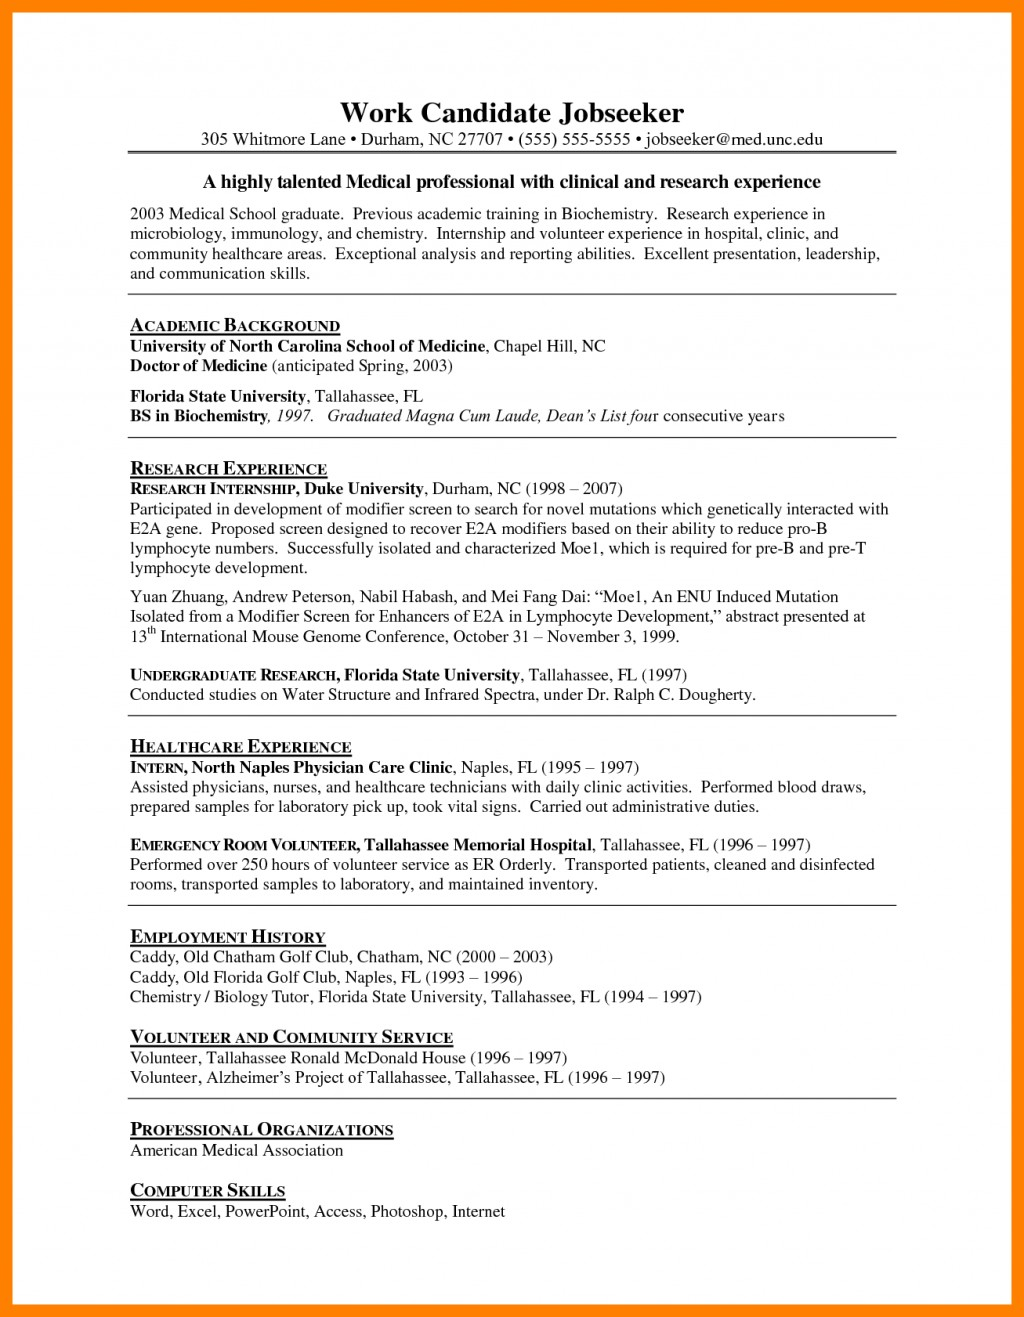 014 Essay Example Volunteer Experience Interesting Hospital Resume Also At Surprising Examples Nursing Home Large